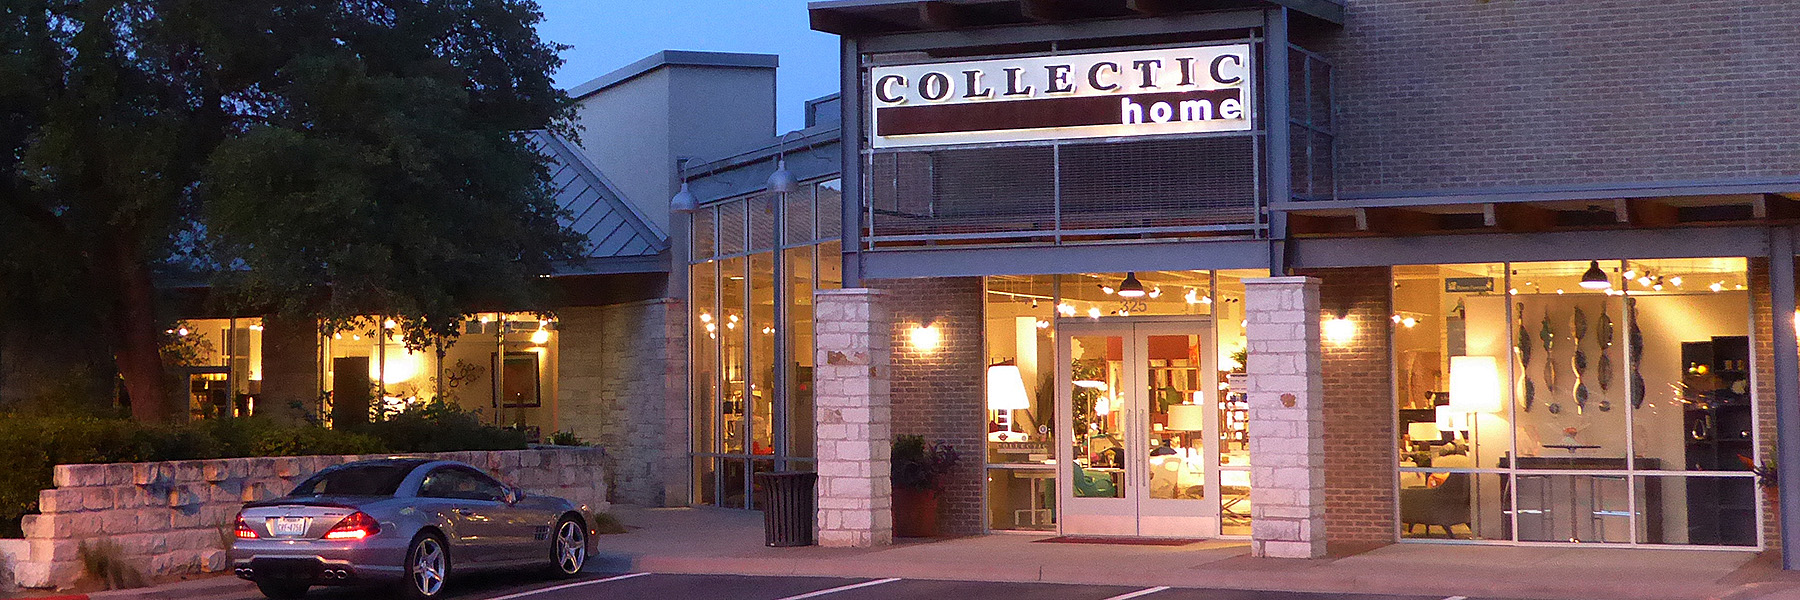 Upscale Contemporary Furniture Showroom in Austin, TX - 2785 Bee Cave Rd #325 Rollingwood, TX 78746 | 512.347.1616 | Learn More >